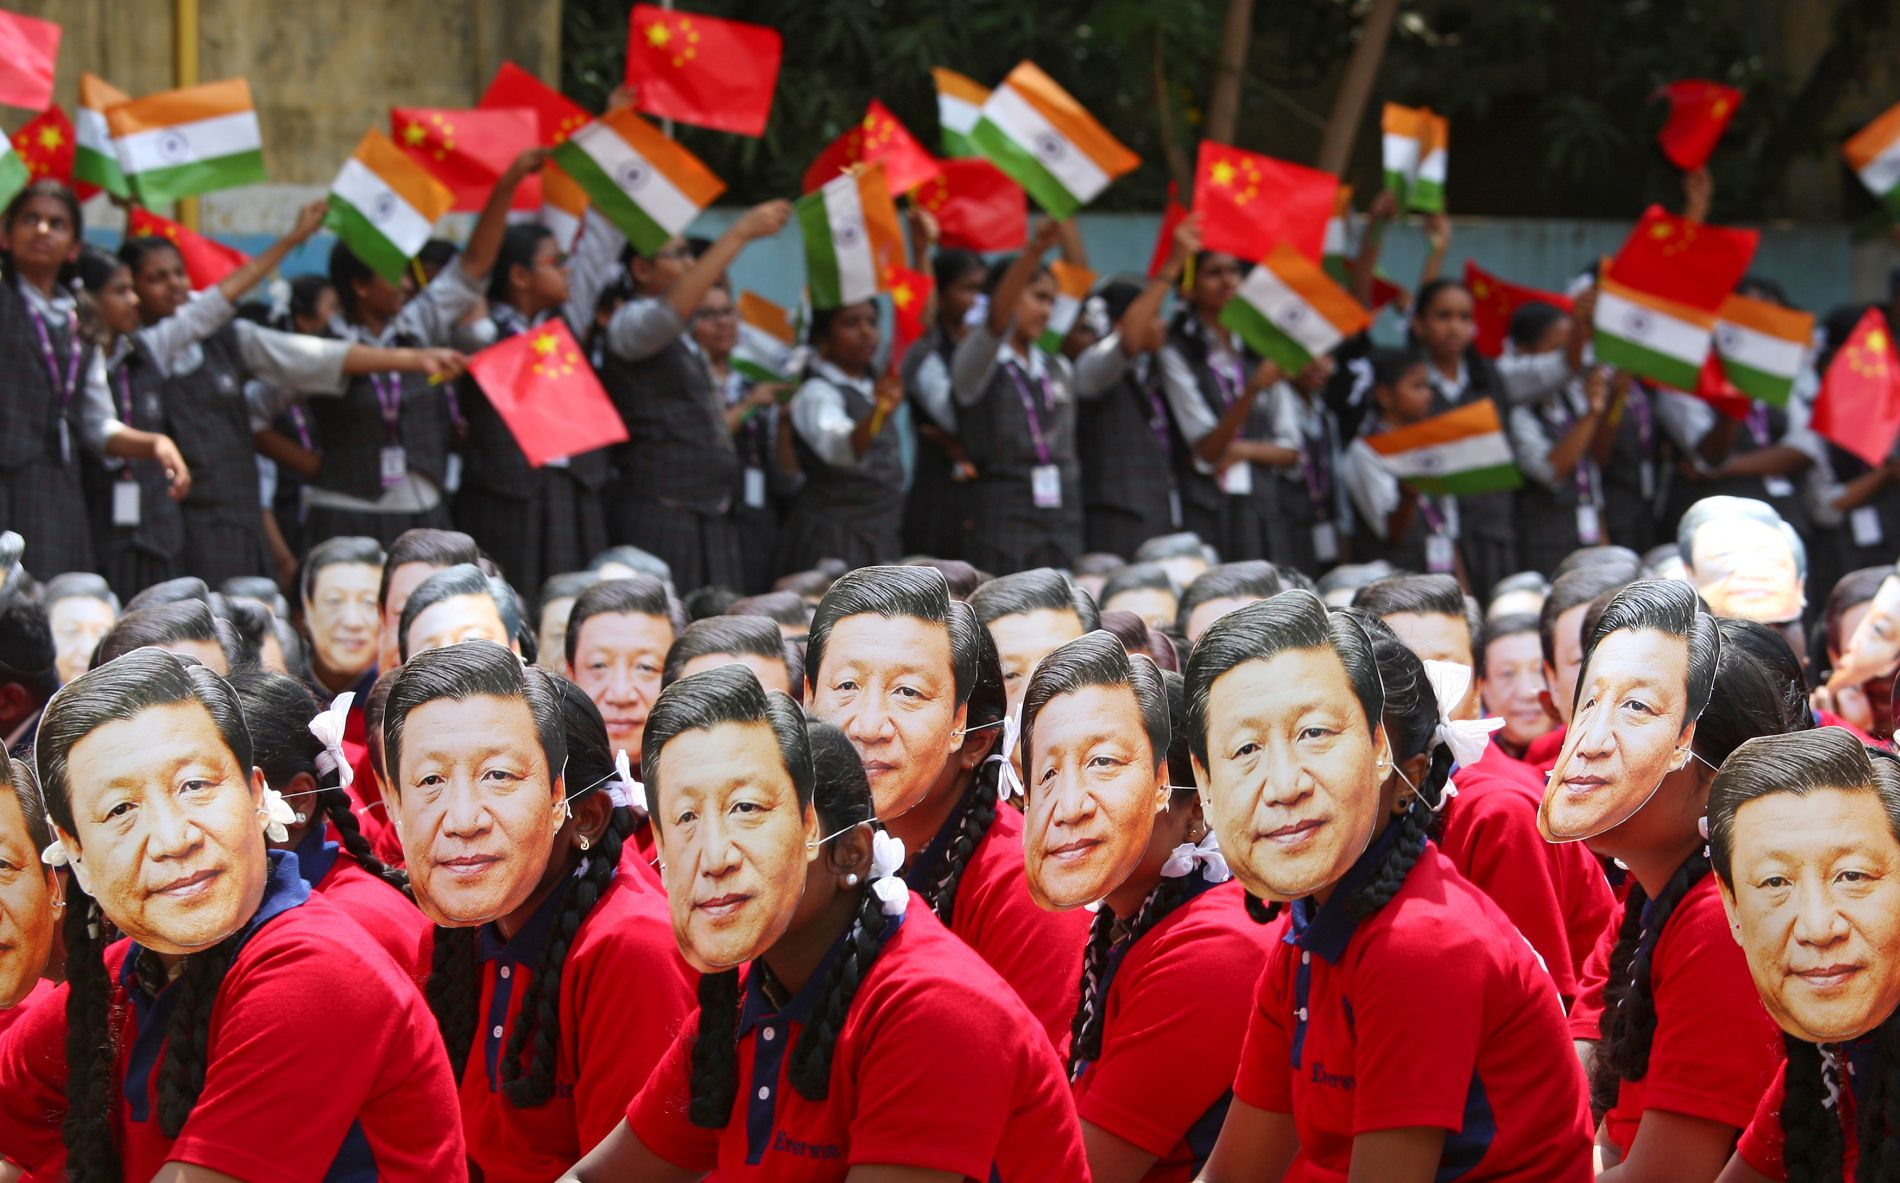 Students wear masks of China's President Xi Jinping as other waves national flags of India and China, ahead of the informal summit with India's Prime Minister Narendra Modi, at a school in Chennai